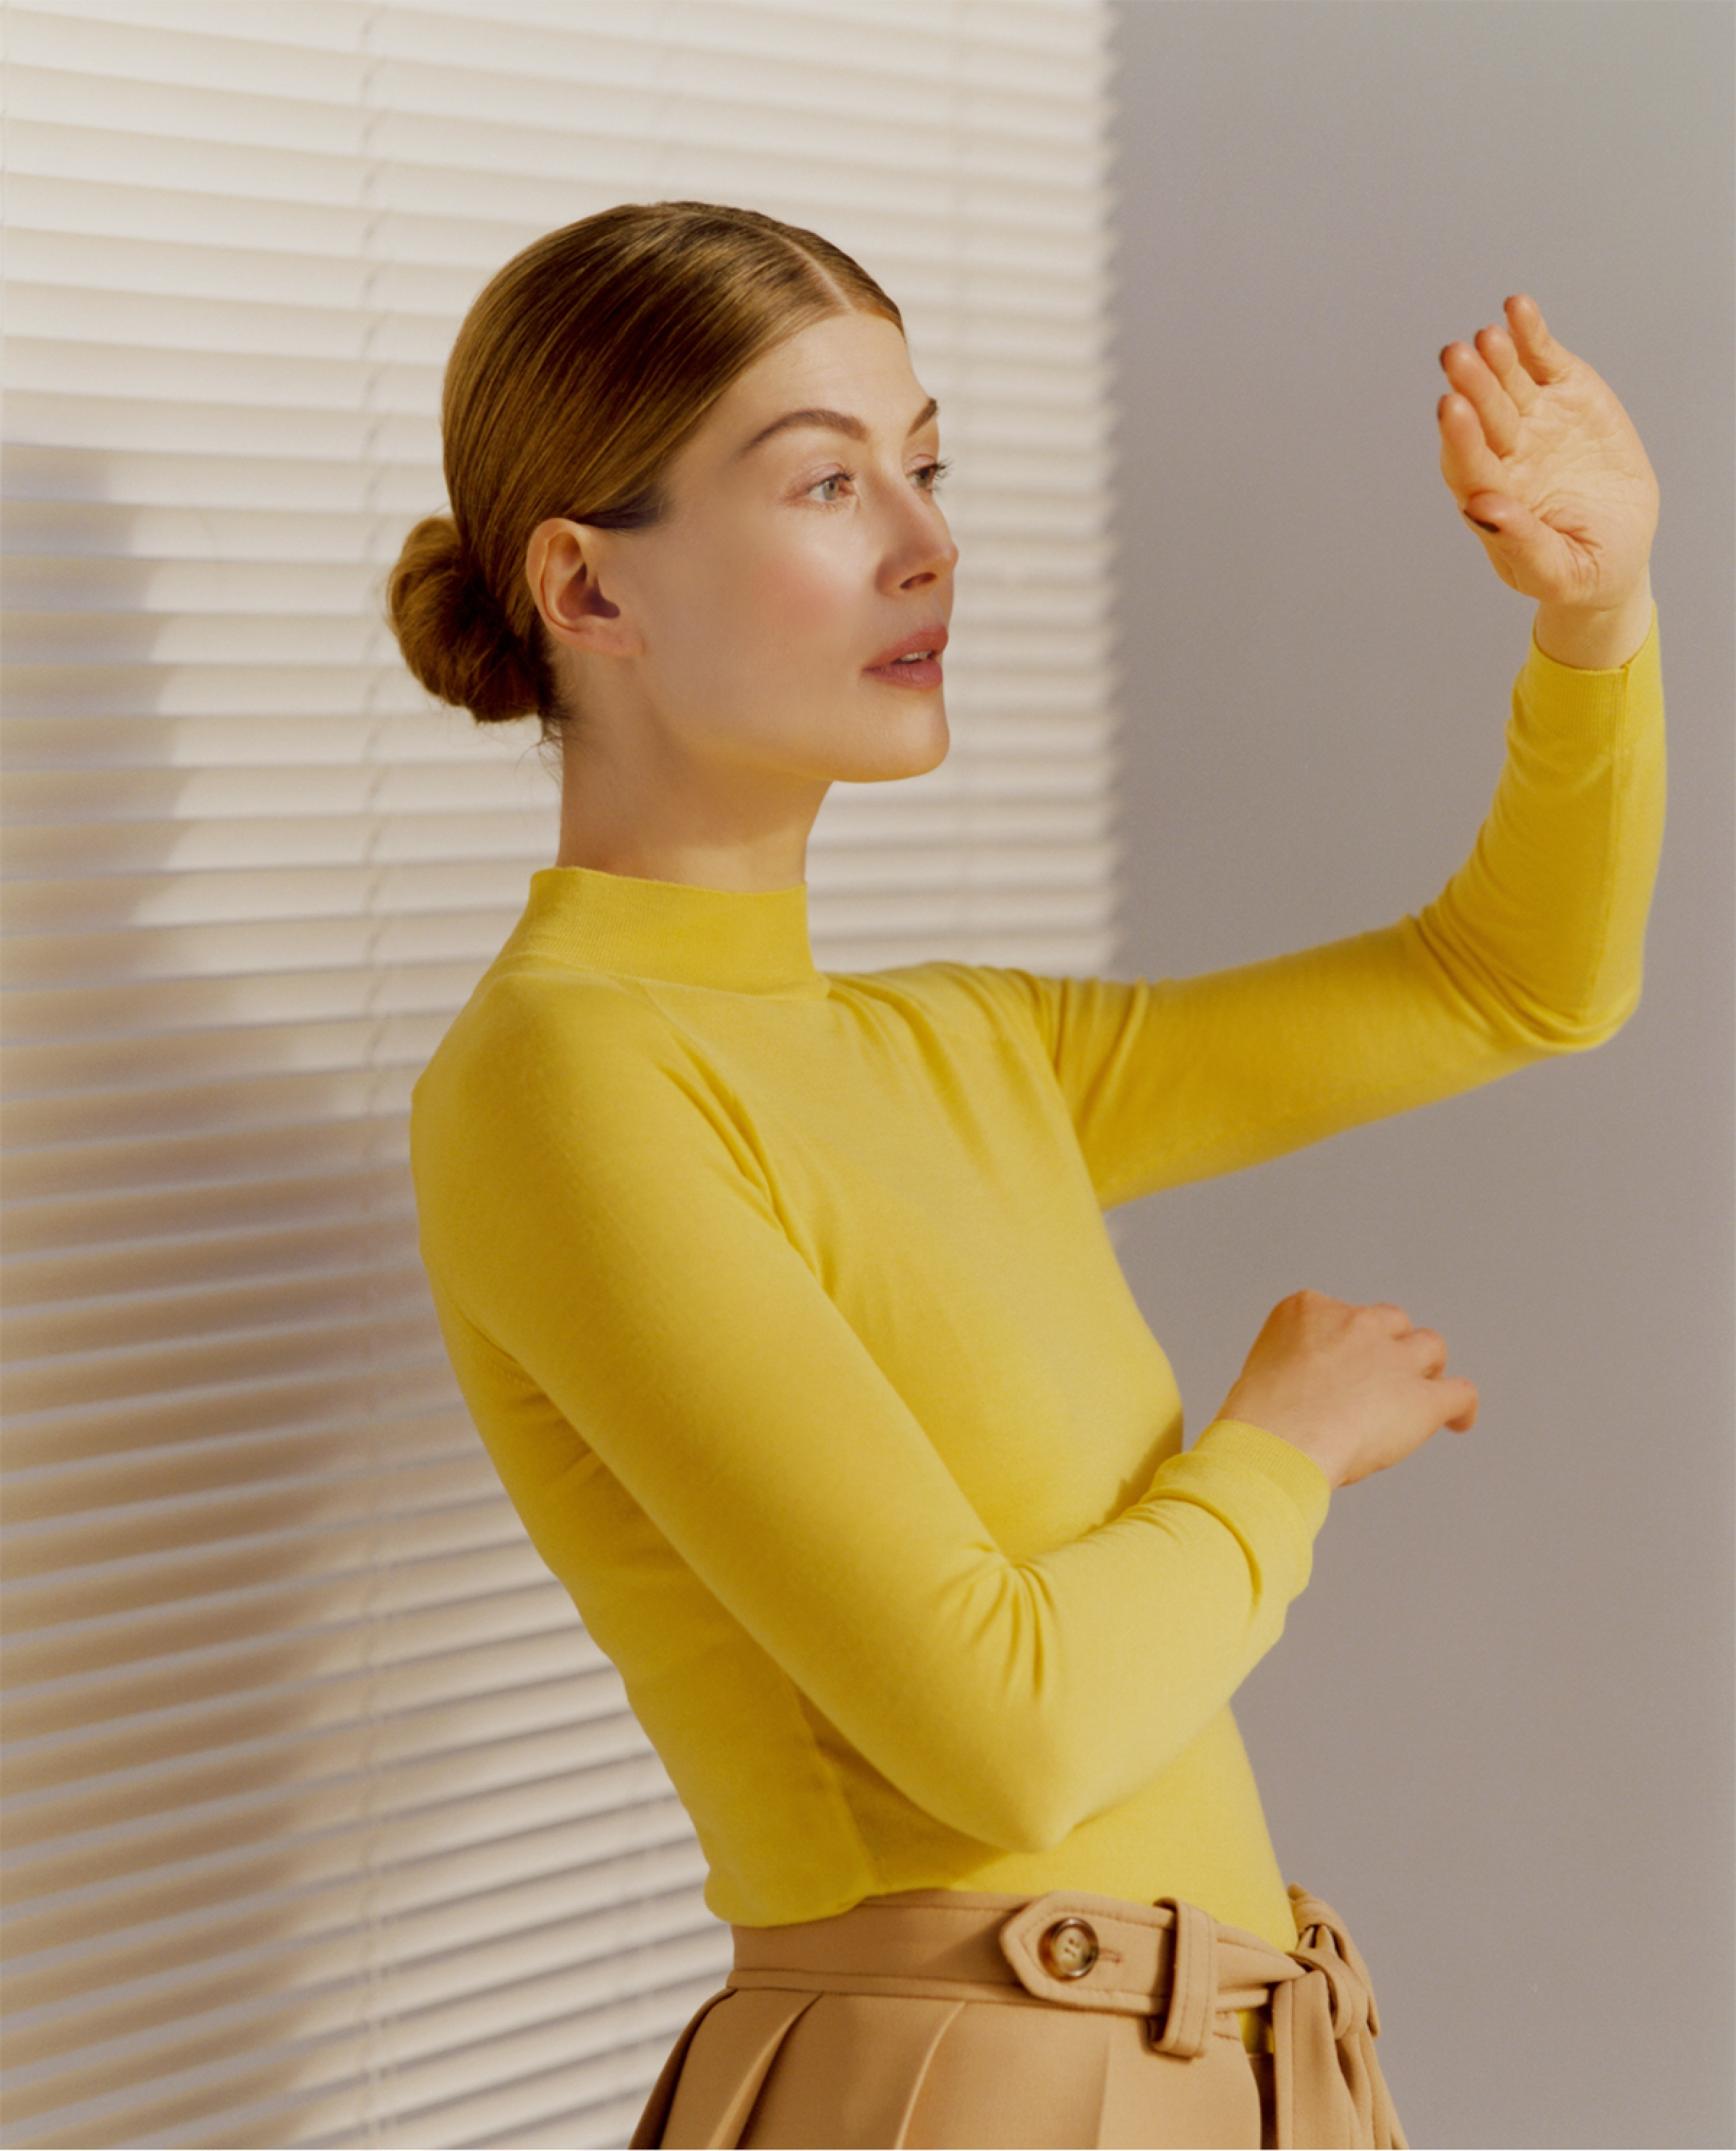 Rosamund Pike, posed in front of closed venetian blinds, wearing a bright yellow fitted turtleneck and beige trousers. She holds a hand up against the light pouring in from an unseen source in front of her.